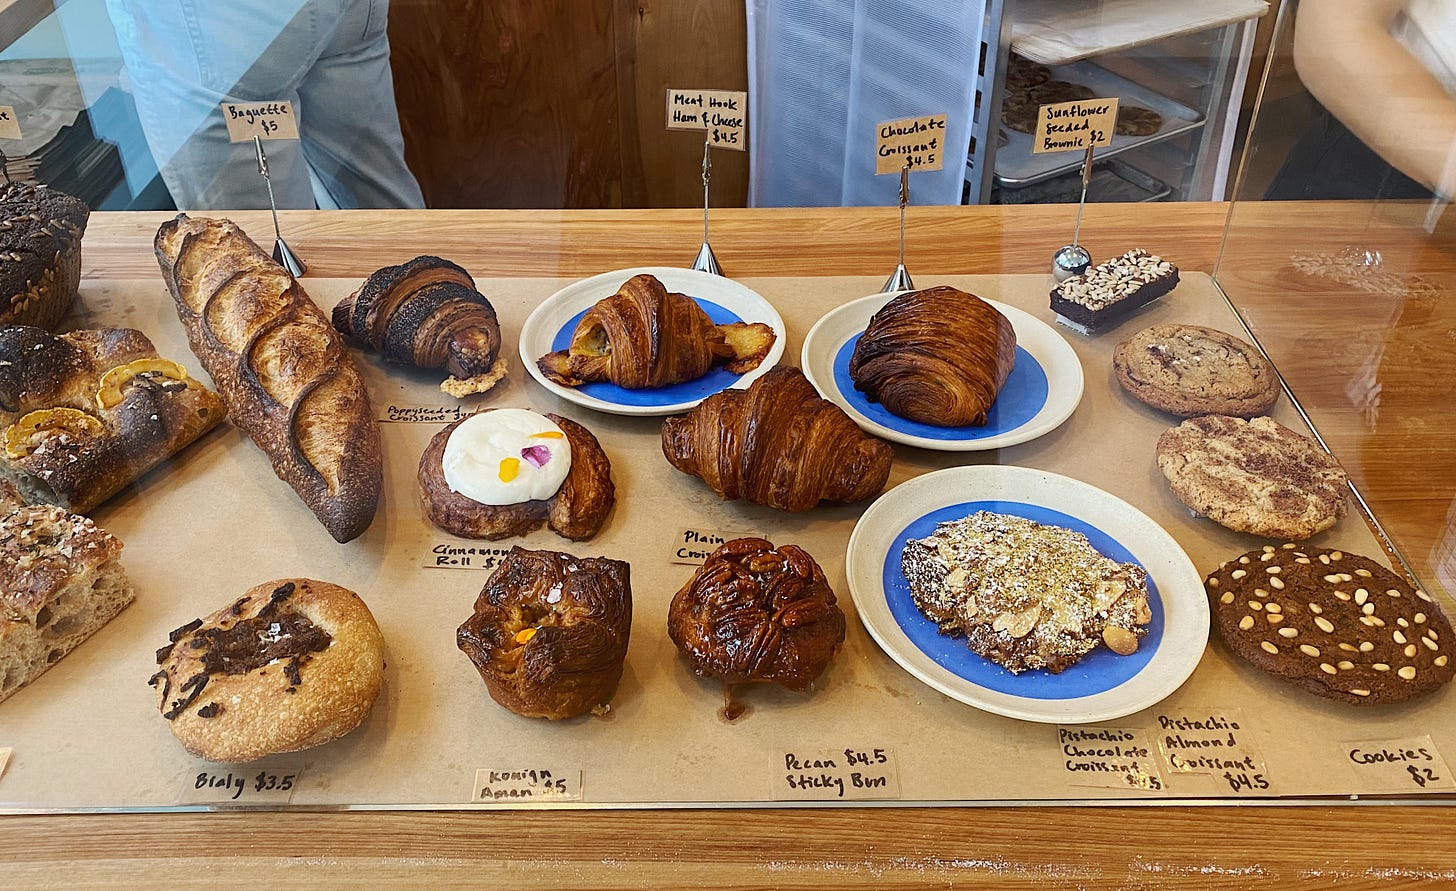 The pastry case at Mel